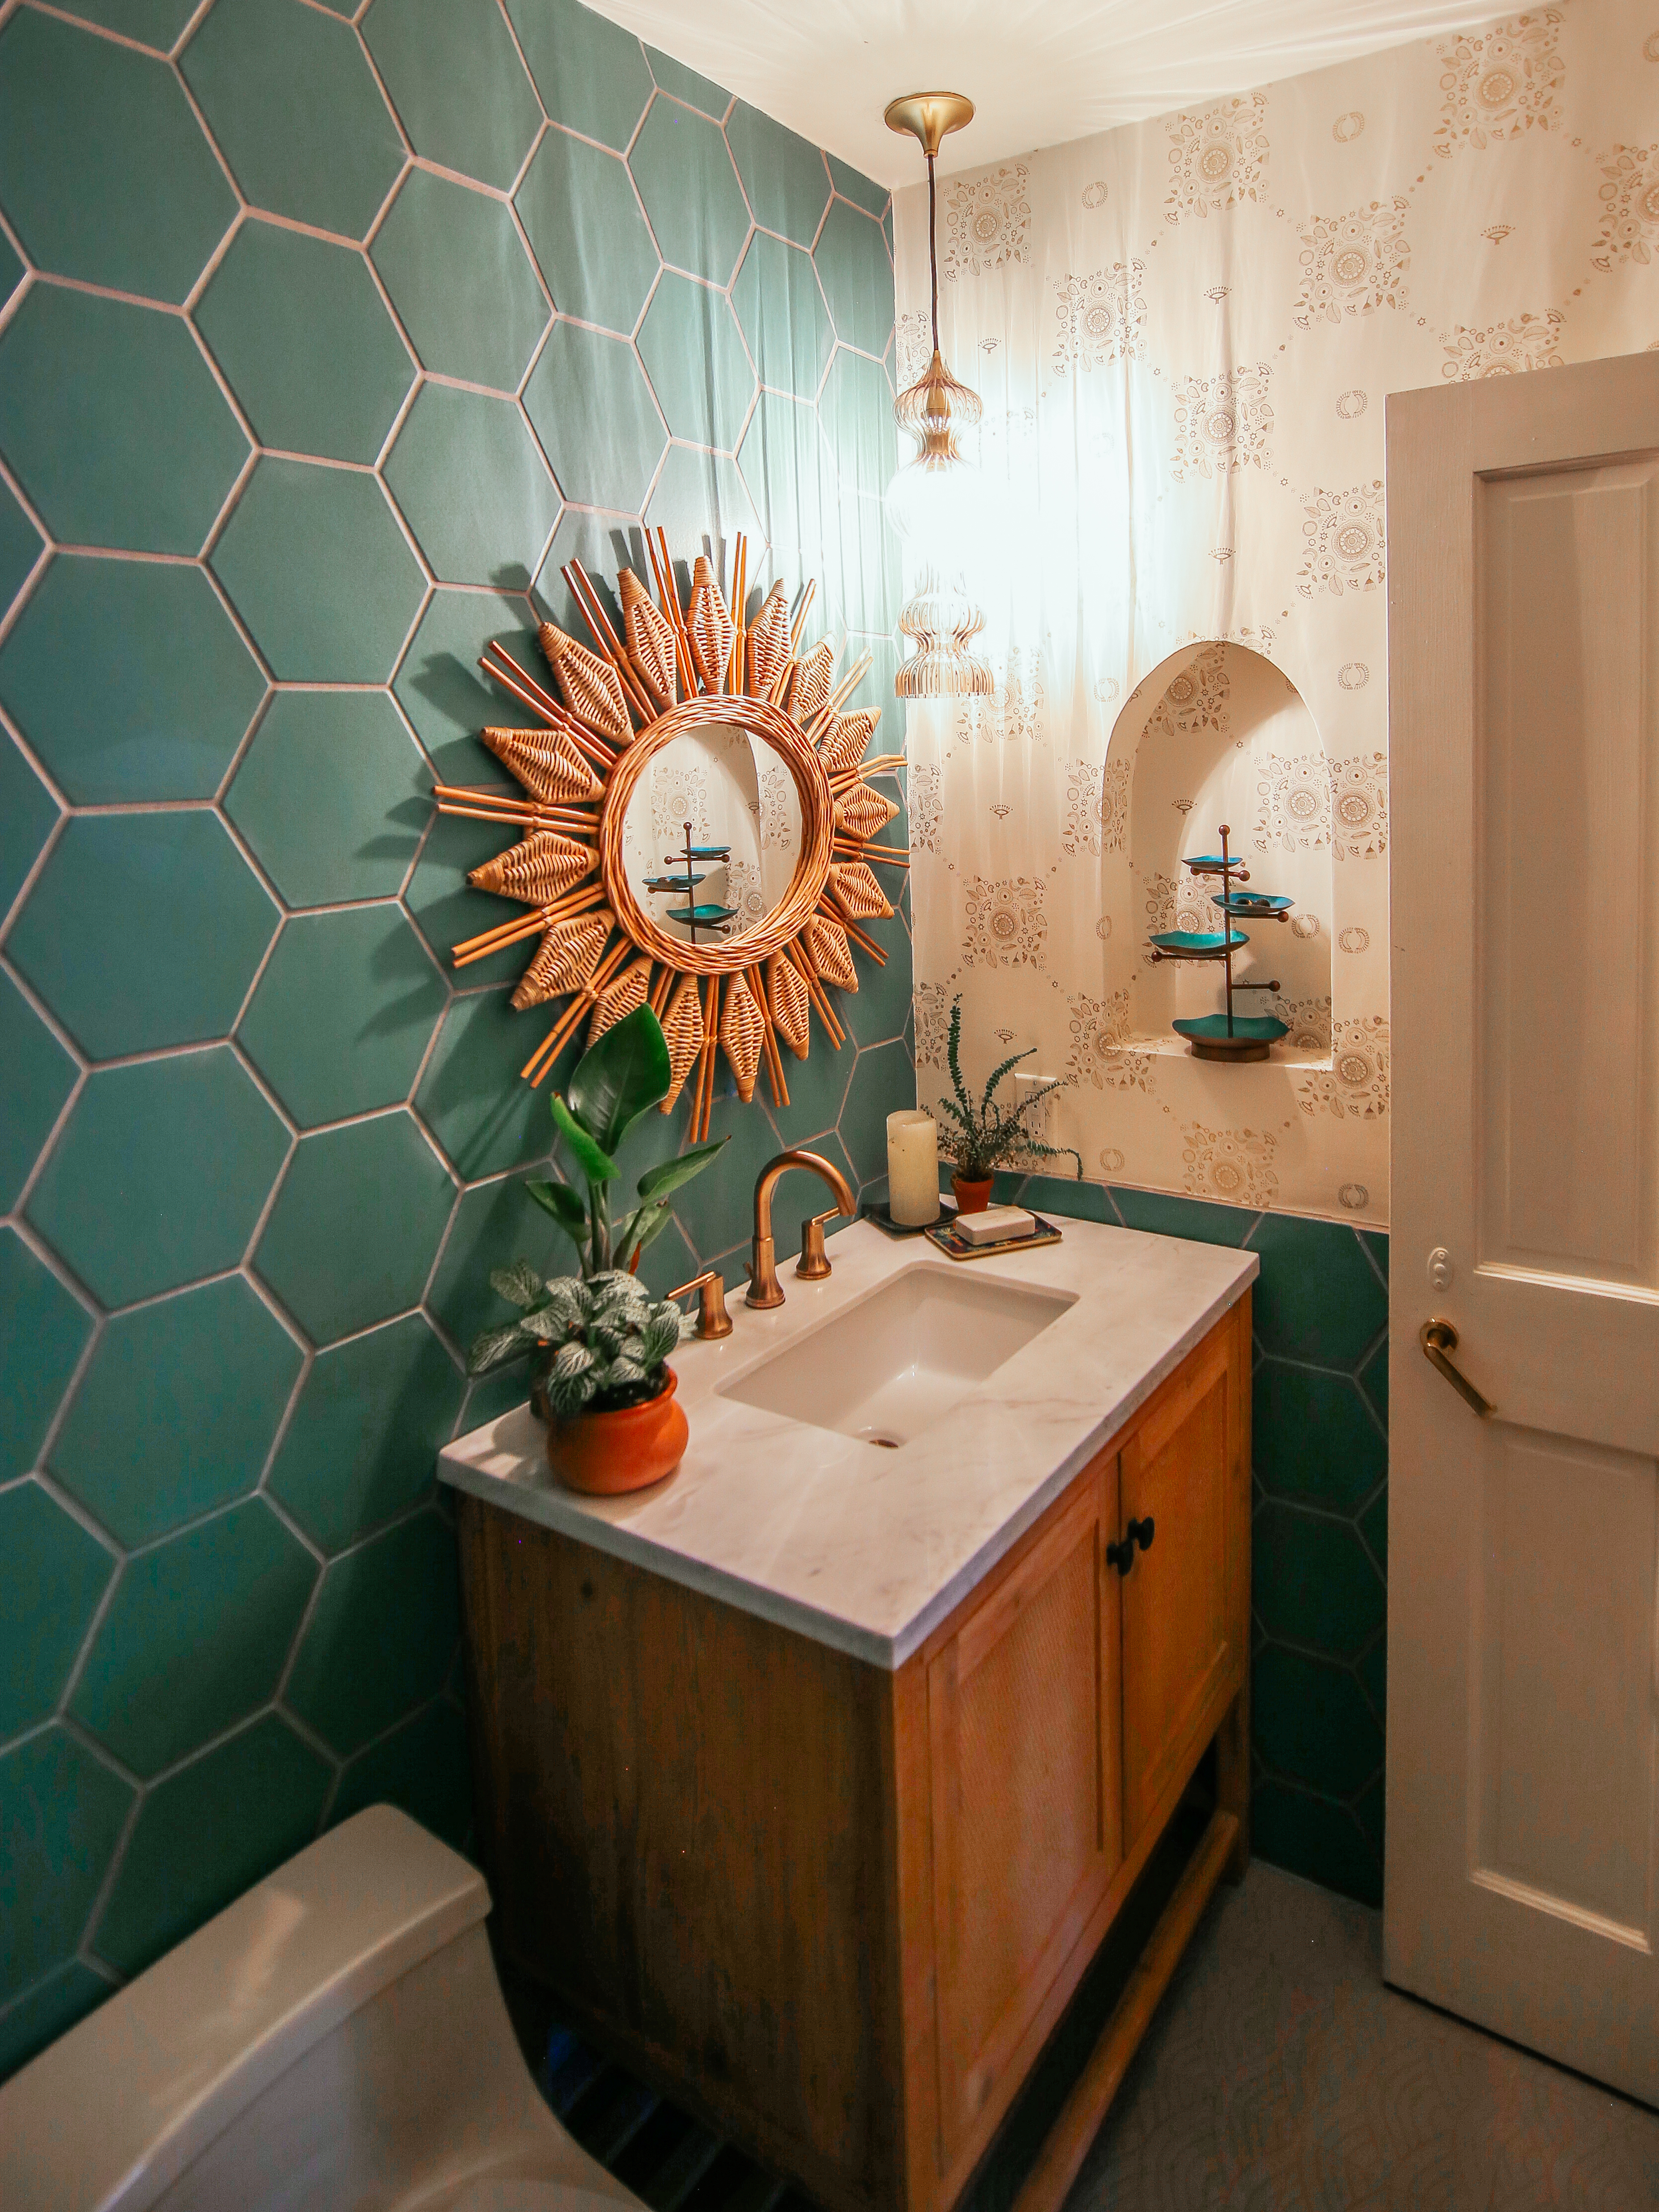 2018_Q3_image_residential_influencer_full_rights_Justina-Faith-Blakeney_parents_condo_guest_bathroom_wall_tile_hexagon_8_tidewater_floor_handpainted_summit_neutral_motif_wainscot_detail.jpg?mtime=20181015122318#asset:421483